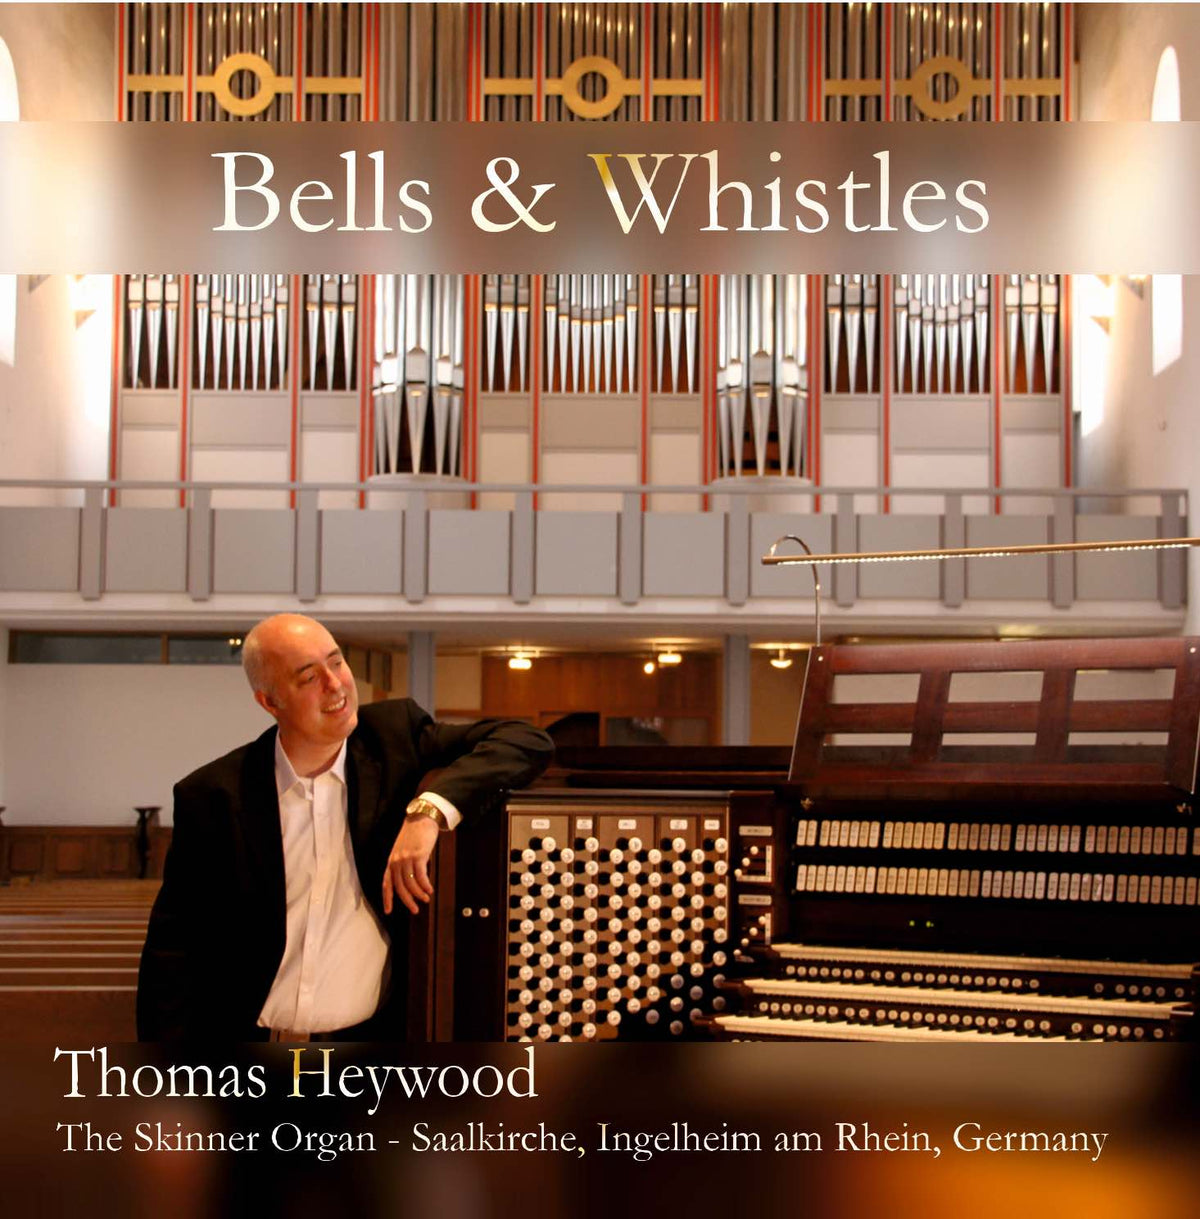 Bells & Whistles (MP3 Album) - Concert Organ International